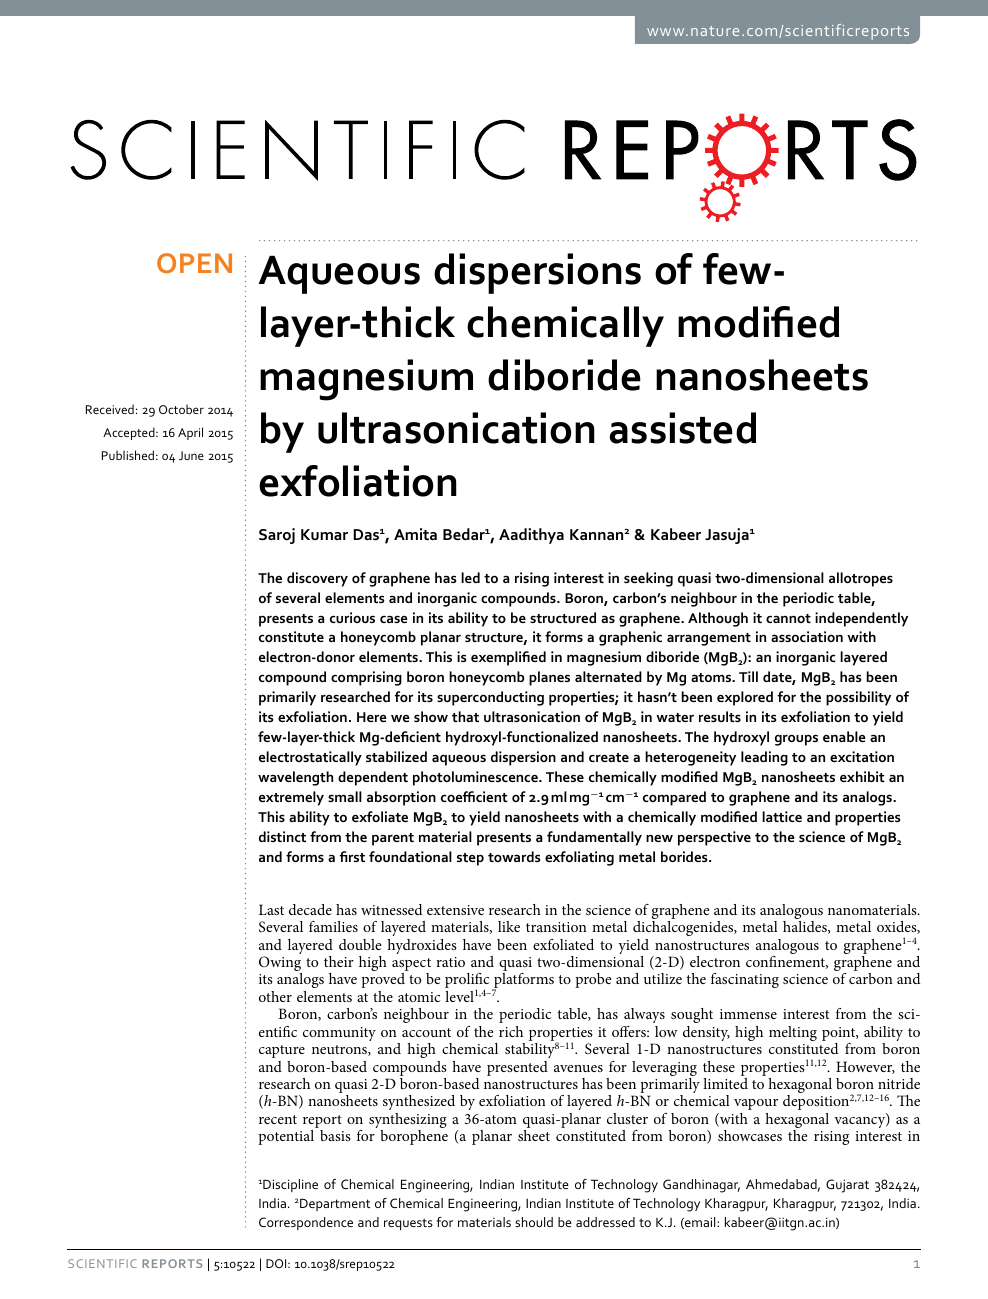 Aqueous dispersions of few-layer-thick chemically modified